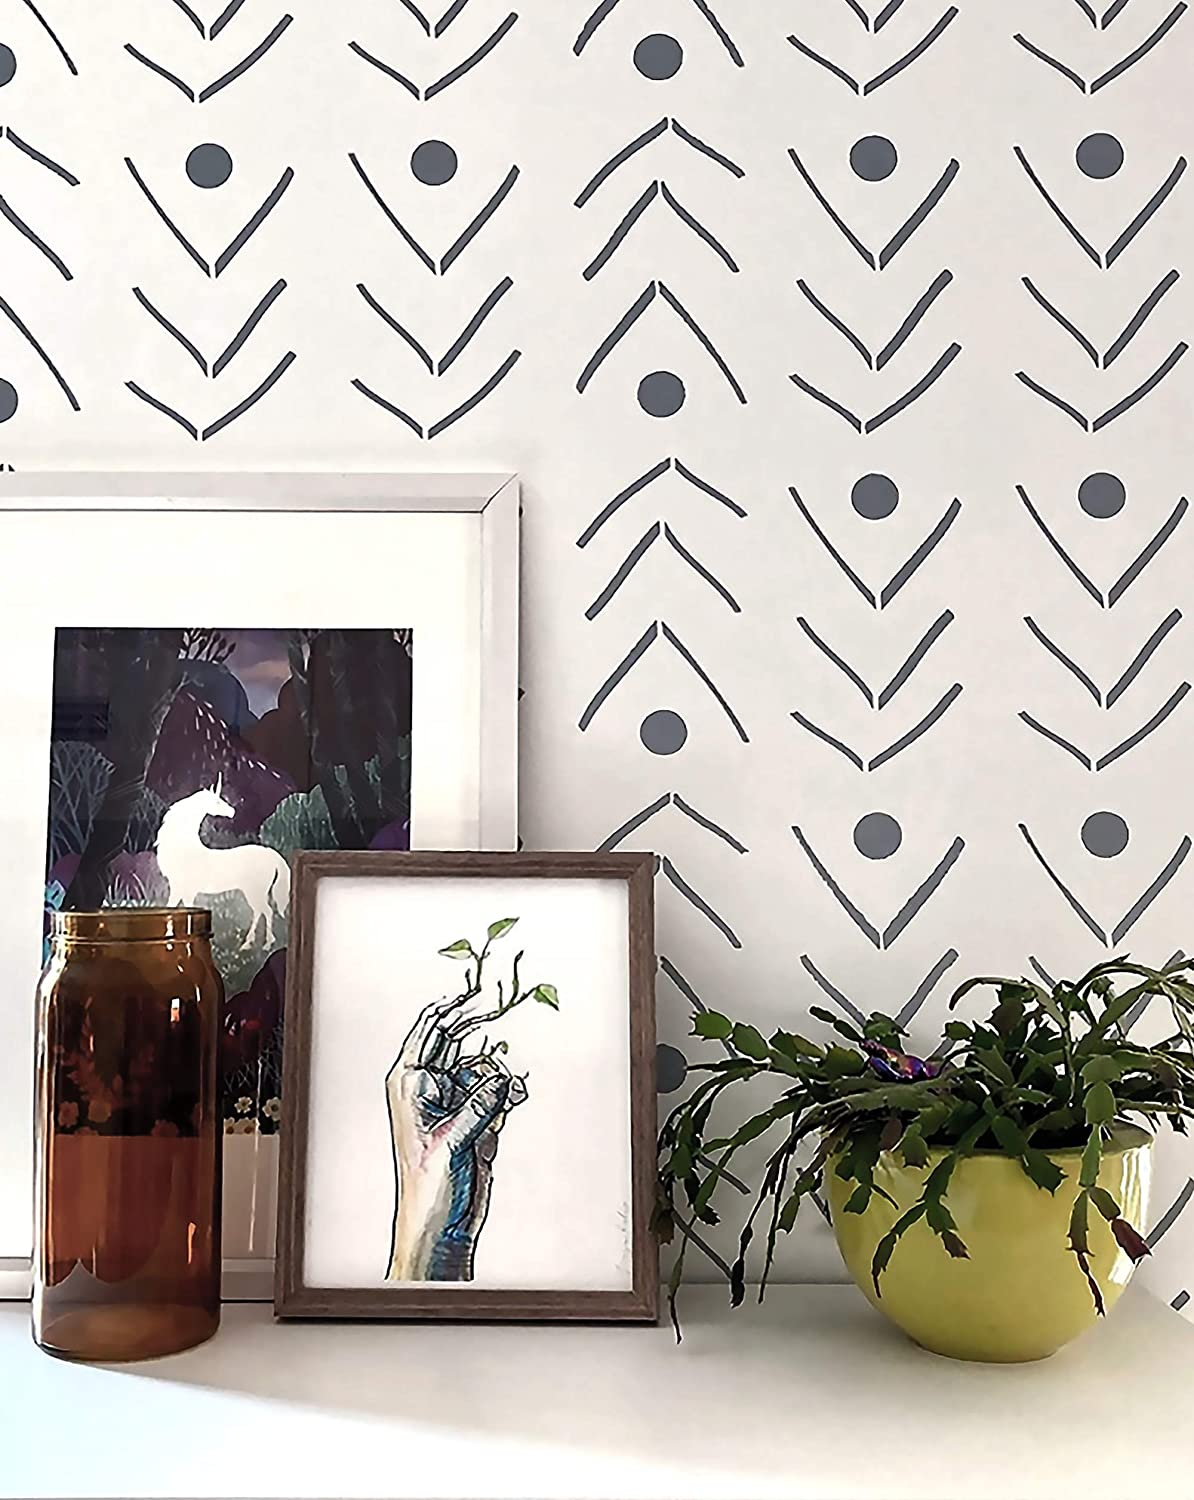 Large Wall Stencil STENCILIT Fishlane Large Stencils for Painting/ XL Size 24x31.5 Boho Wall Stencil//